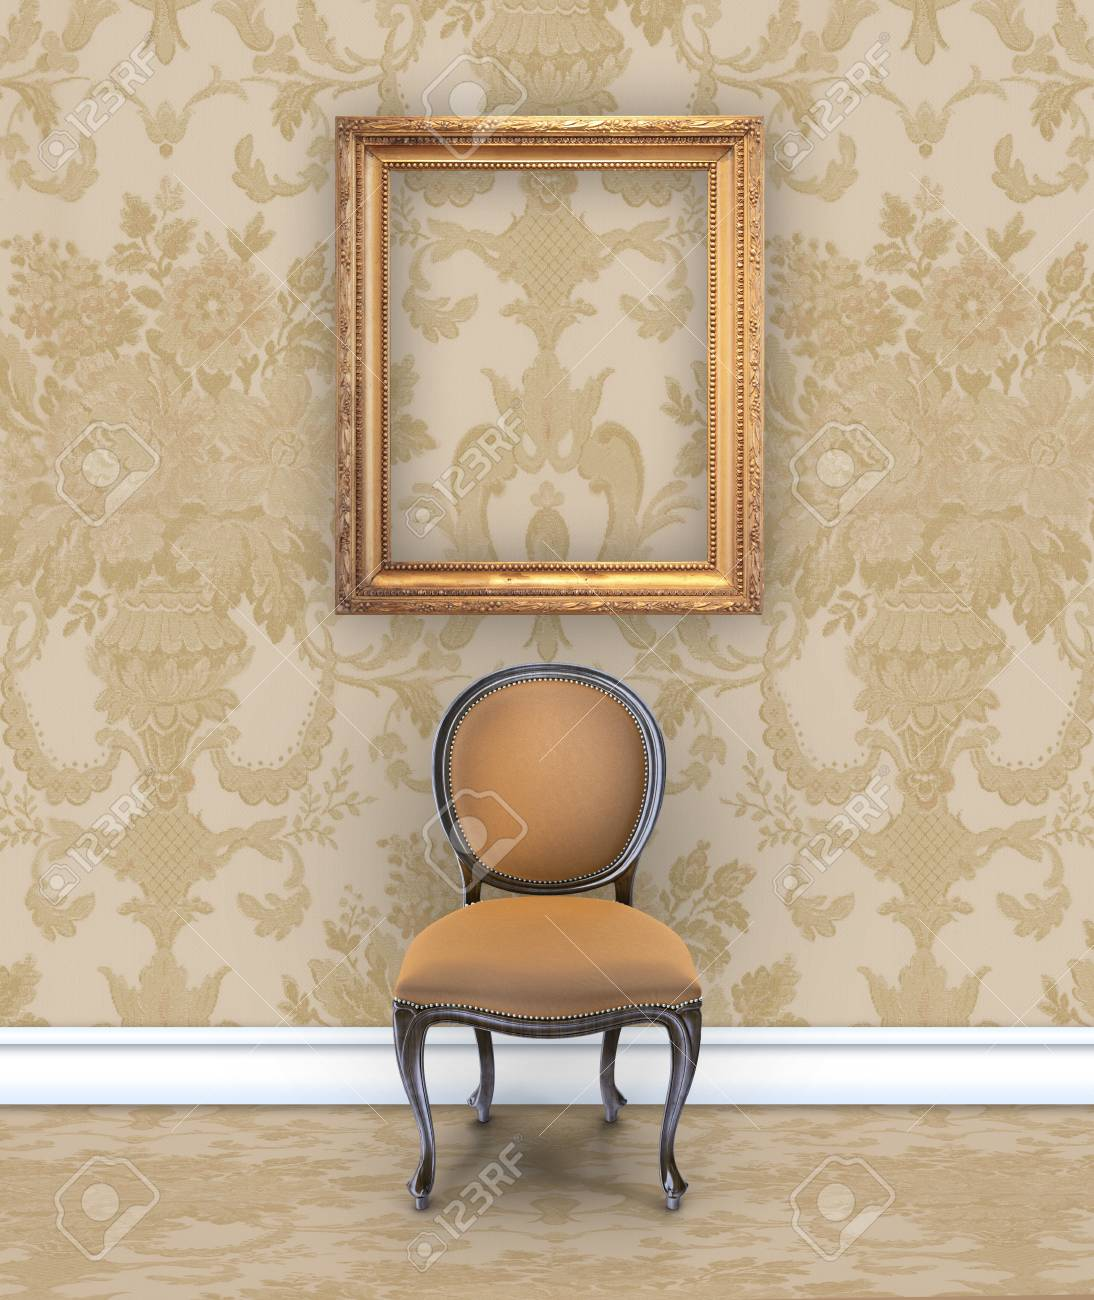 Stock Photo   Wall With Rich Tan Damask Wallpaper, A Velvet Chair, And An  Empty Gold Picture Frame